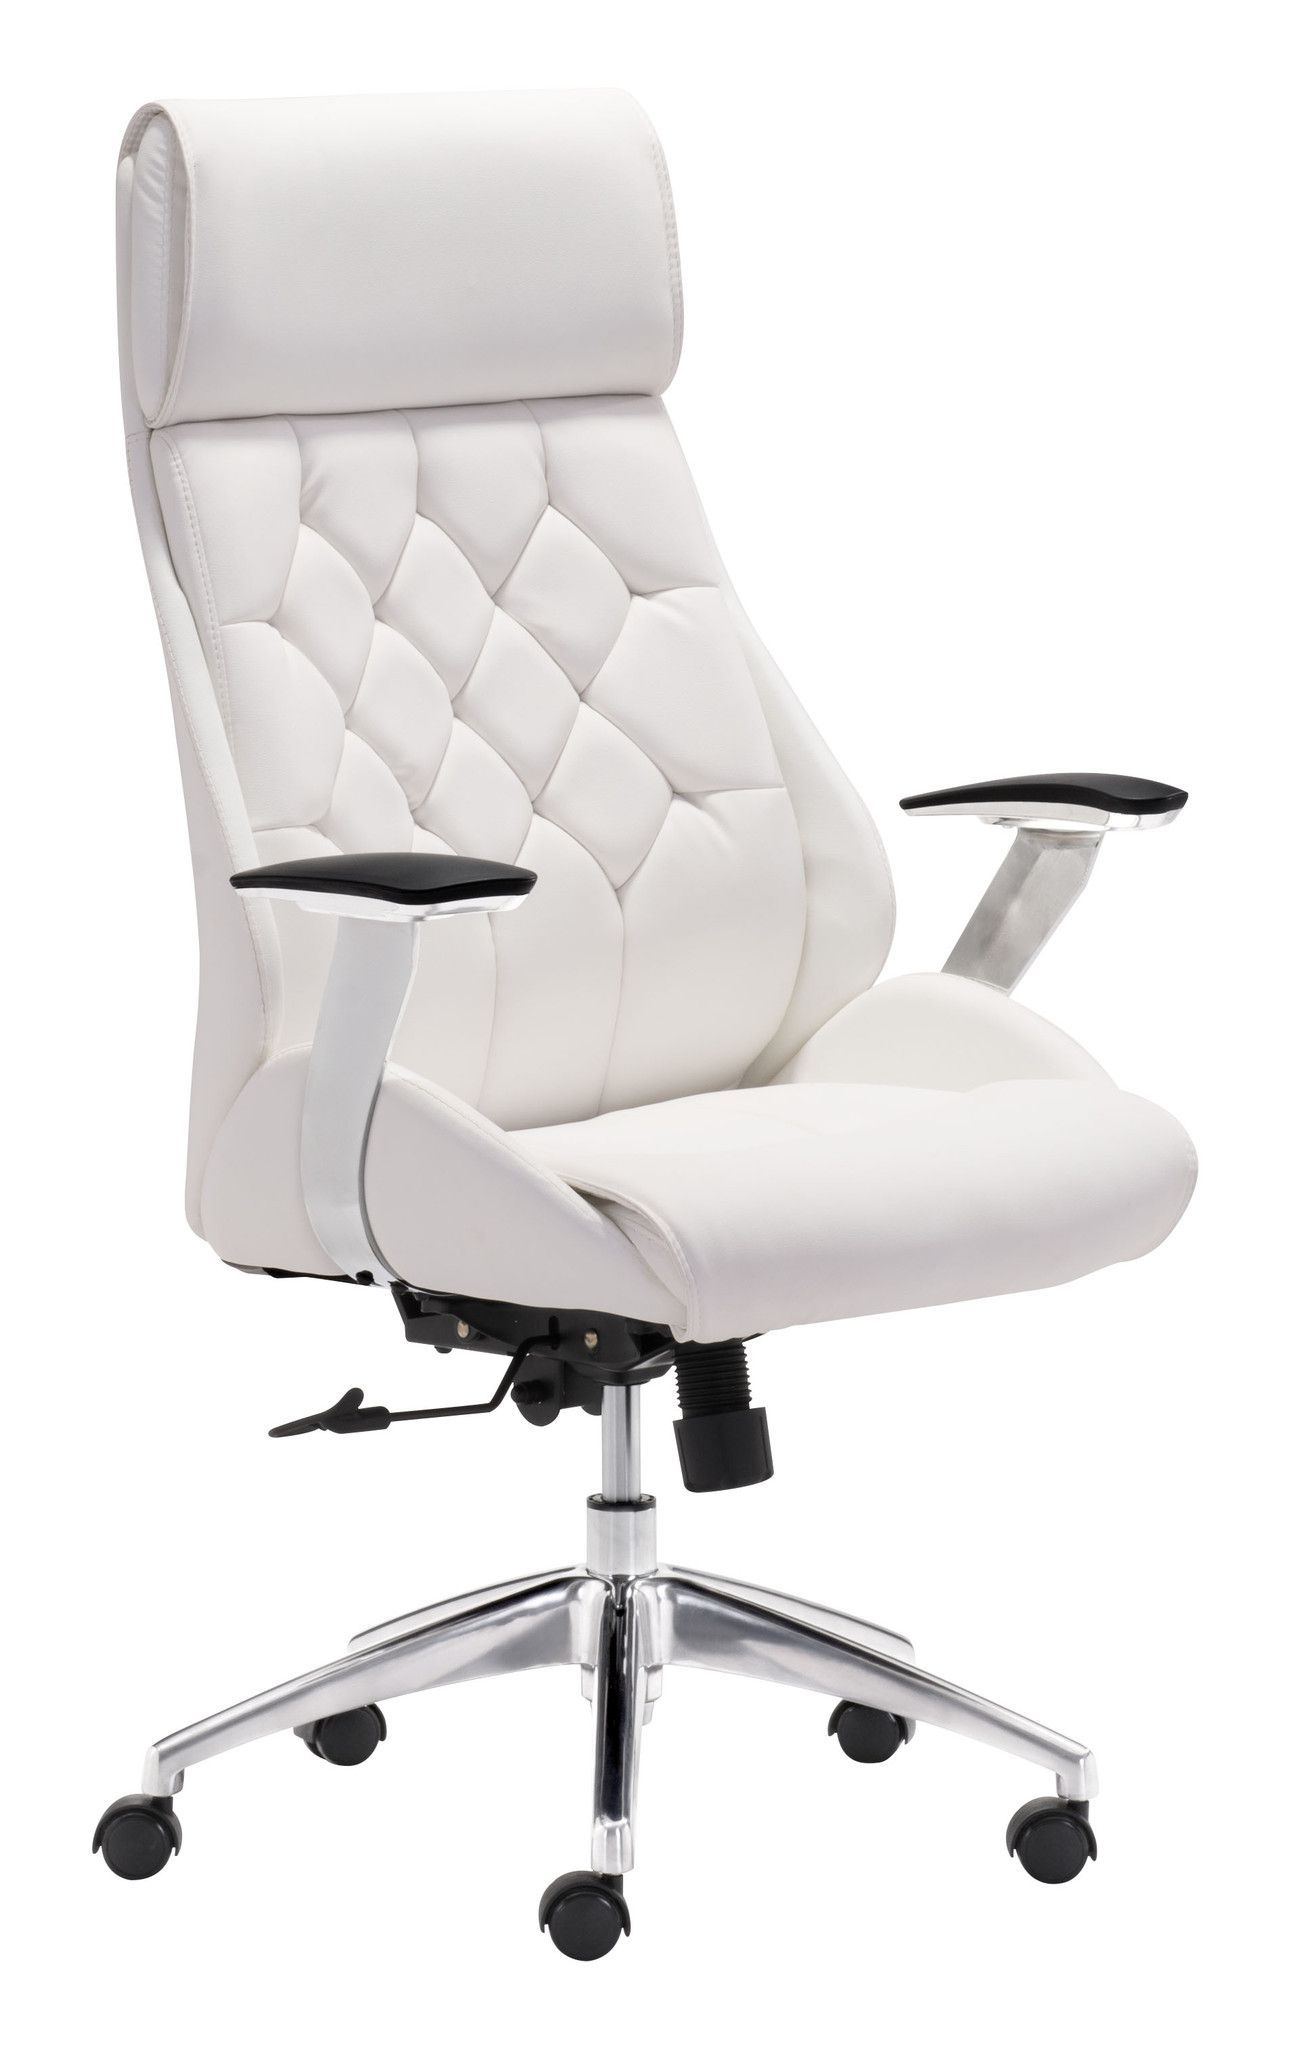 With its ergonomic shape diamond tufted back and form fitting